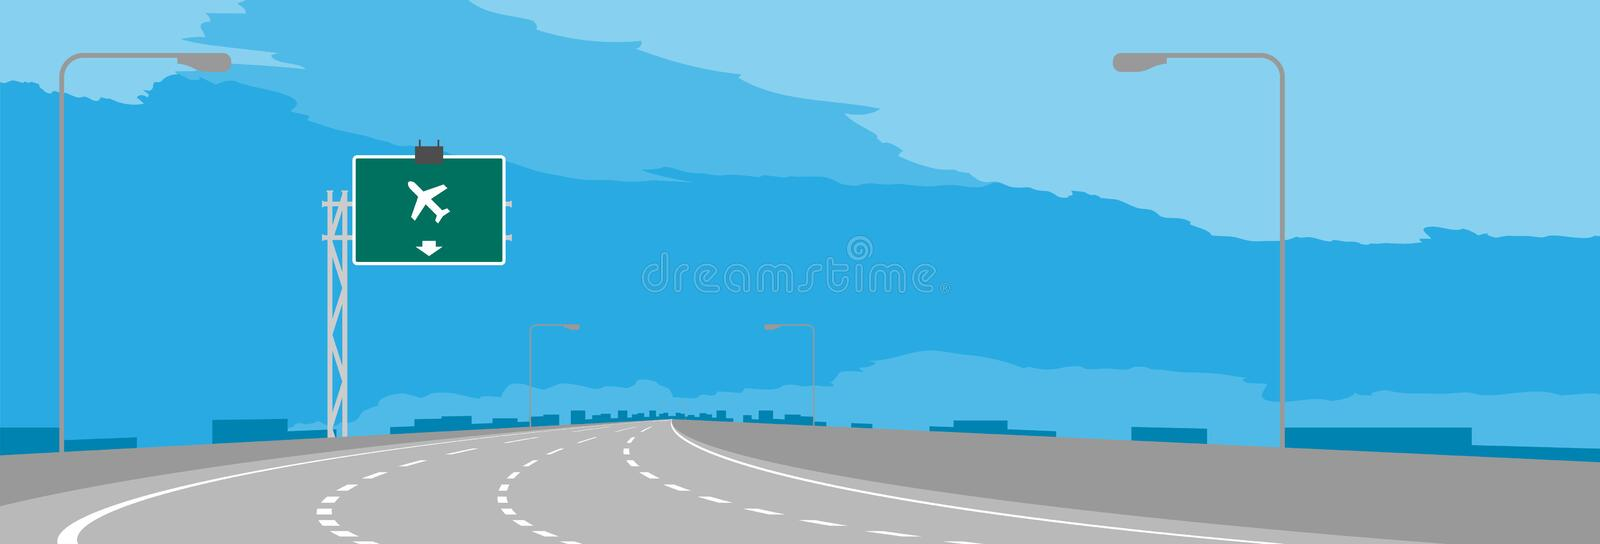 Highway or motorway bend and green signage with airport sign in daytime illustration. Isolated on blue sky background vector illustration